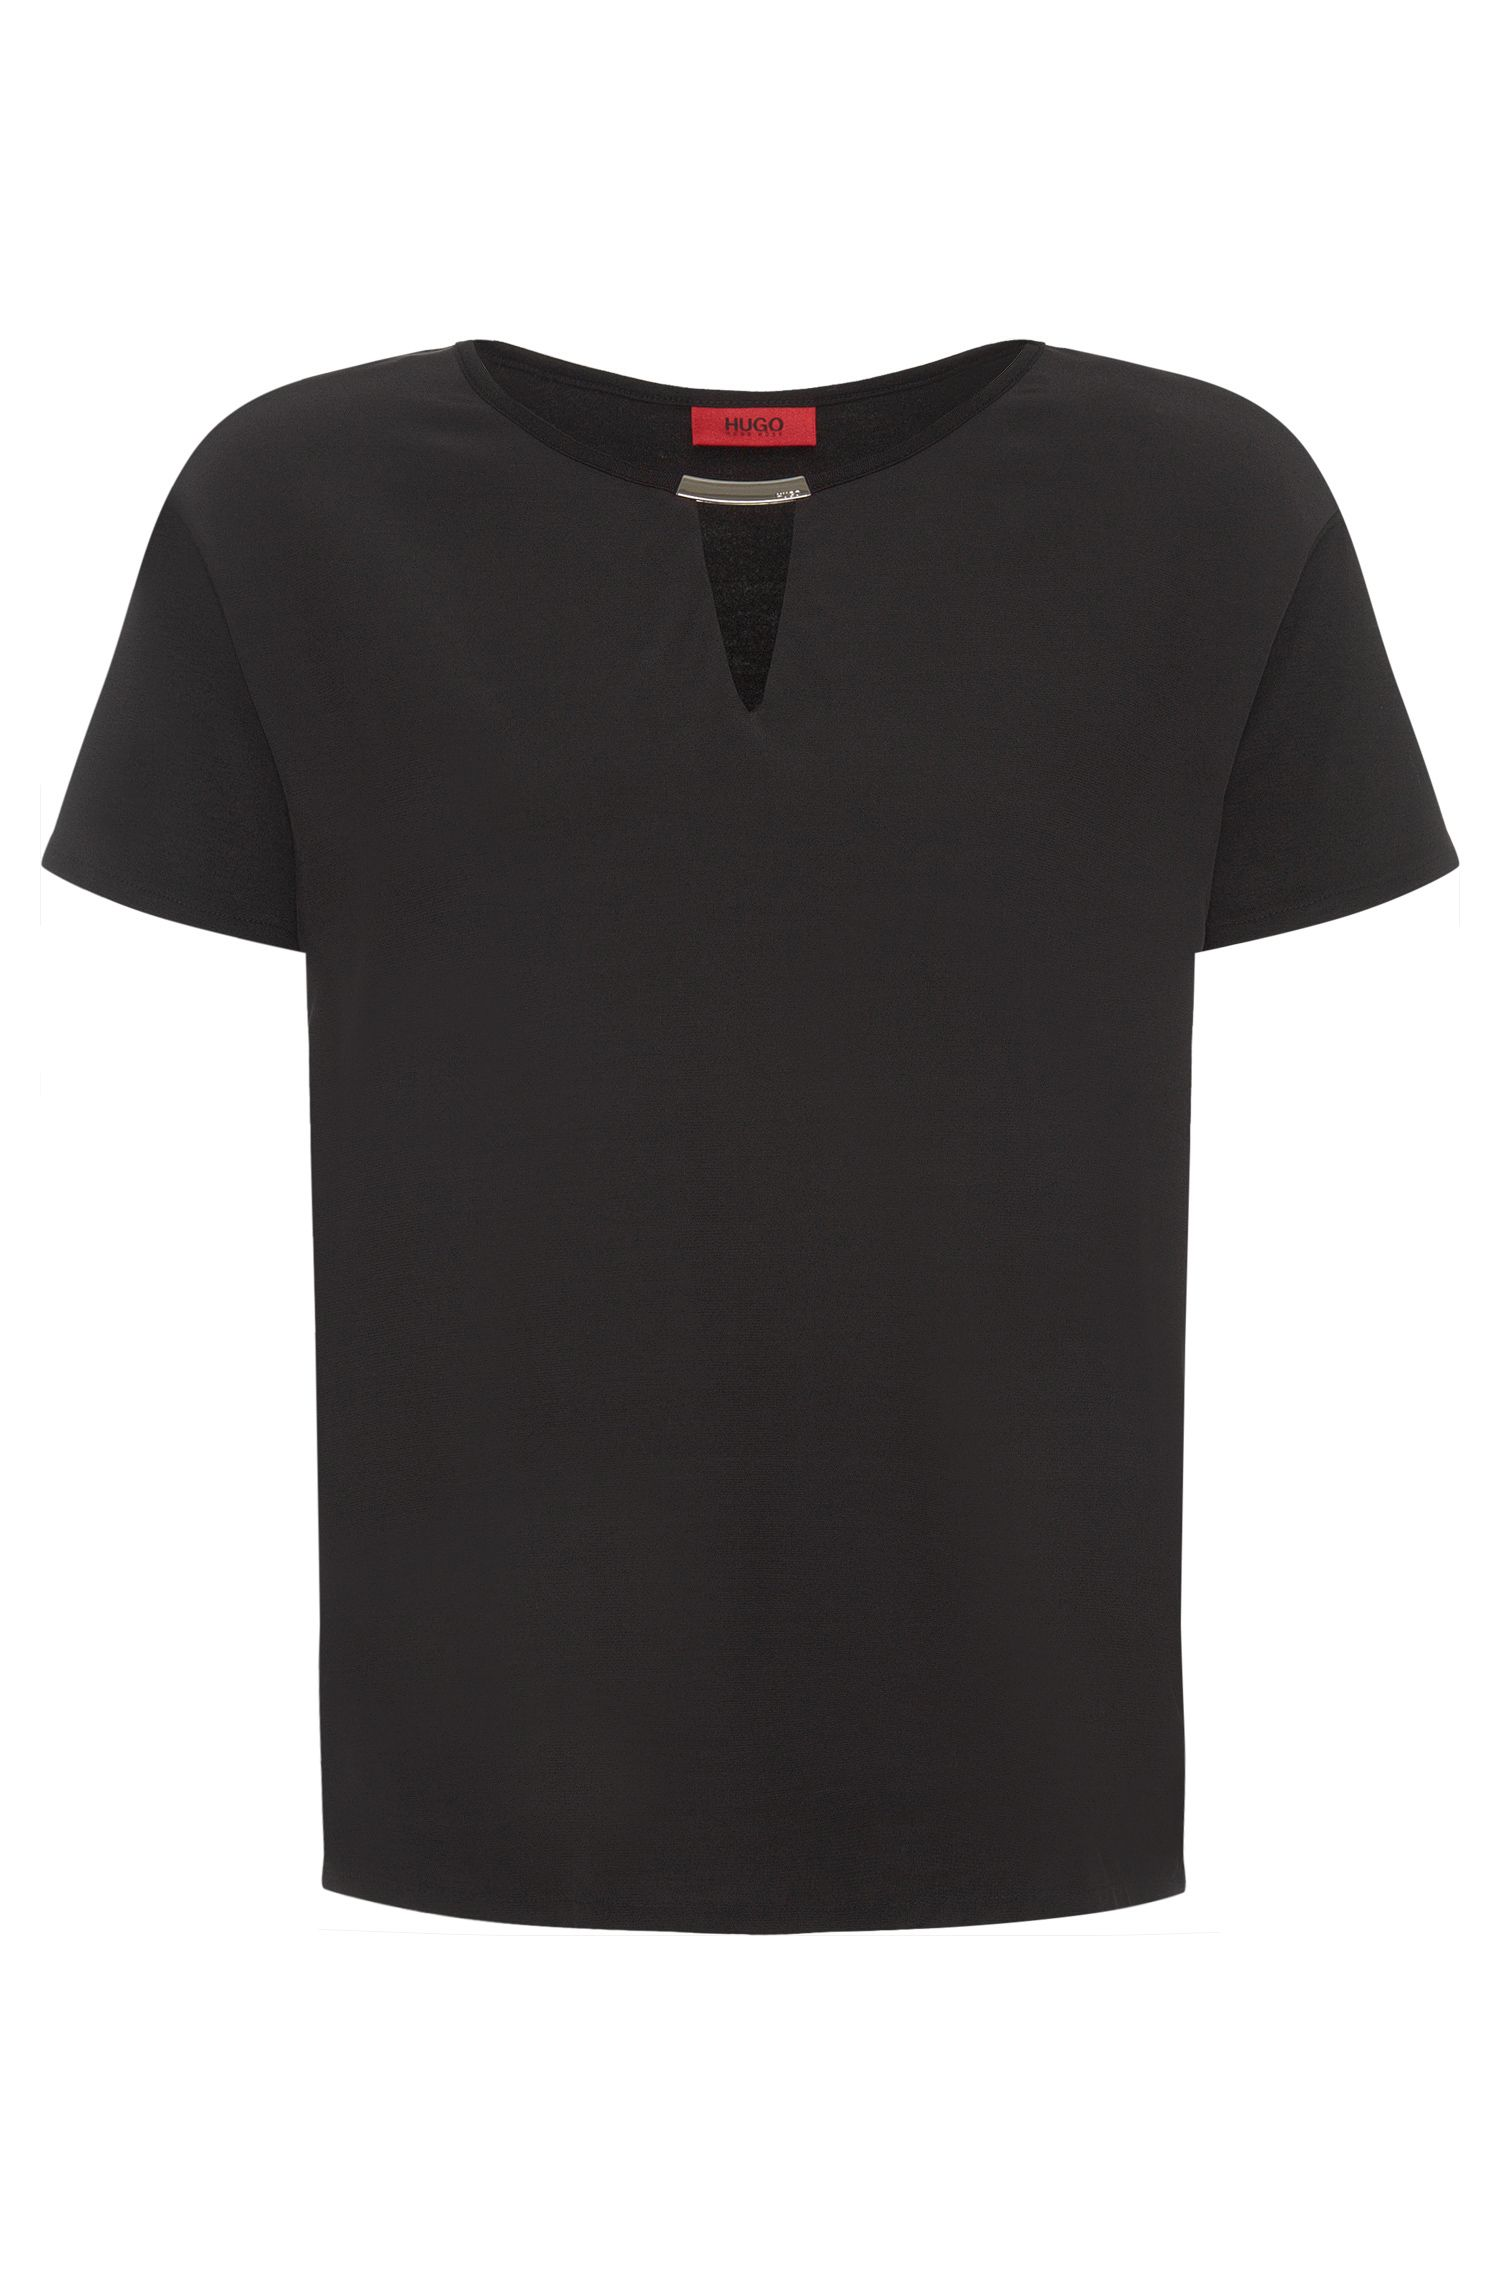 T-shirt blousant uni en viscose stretch : « Dicava »